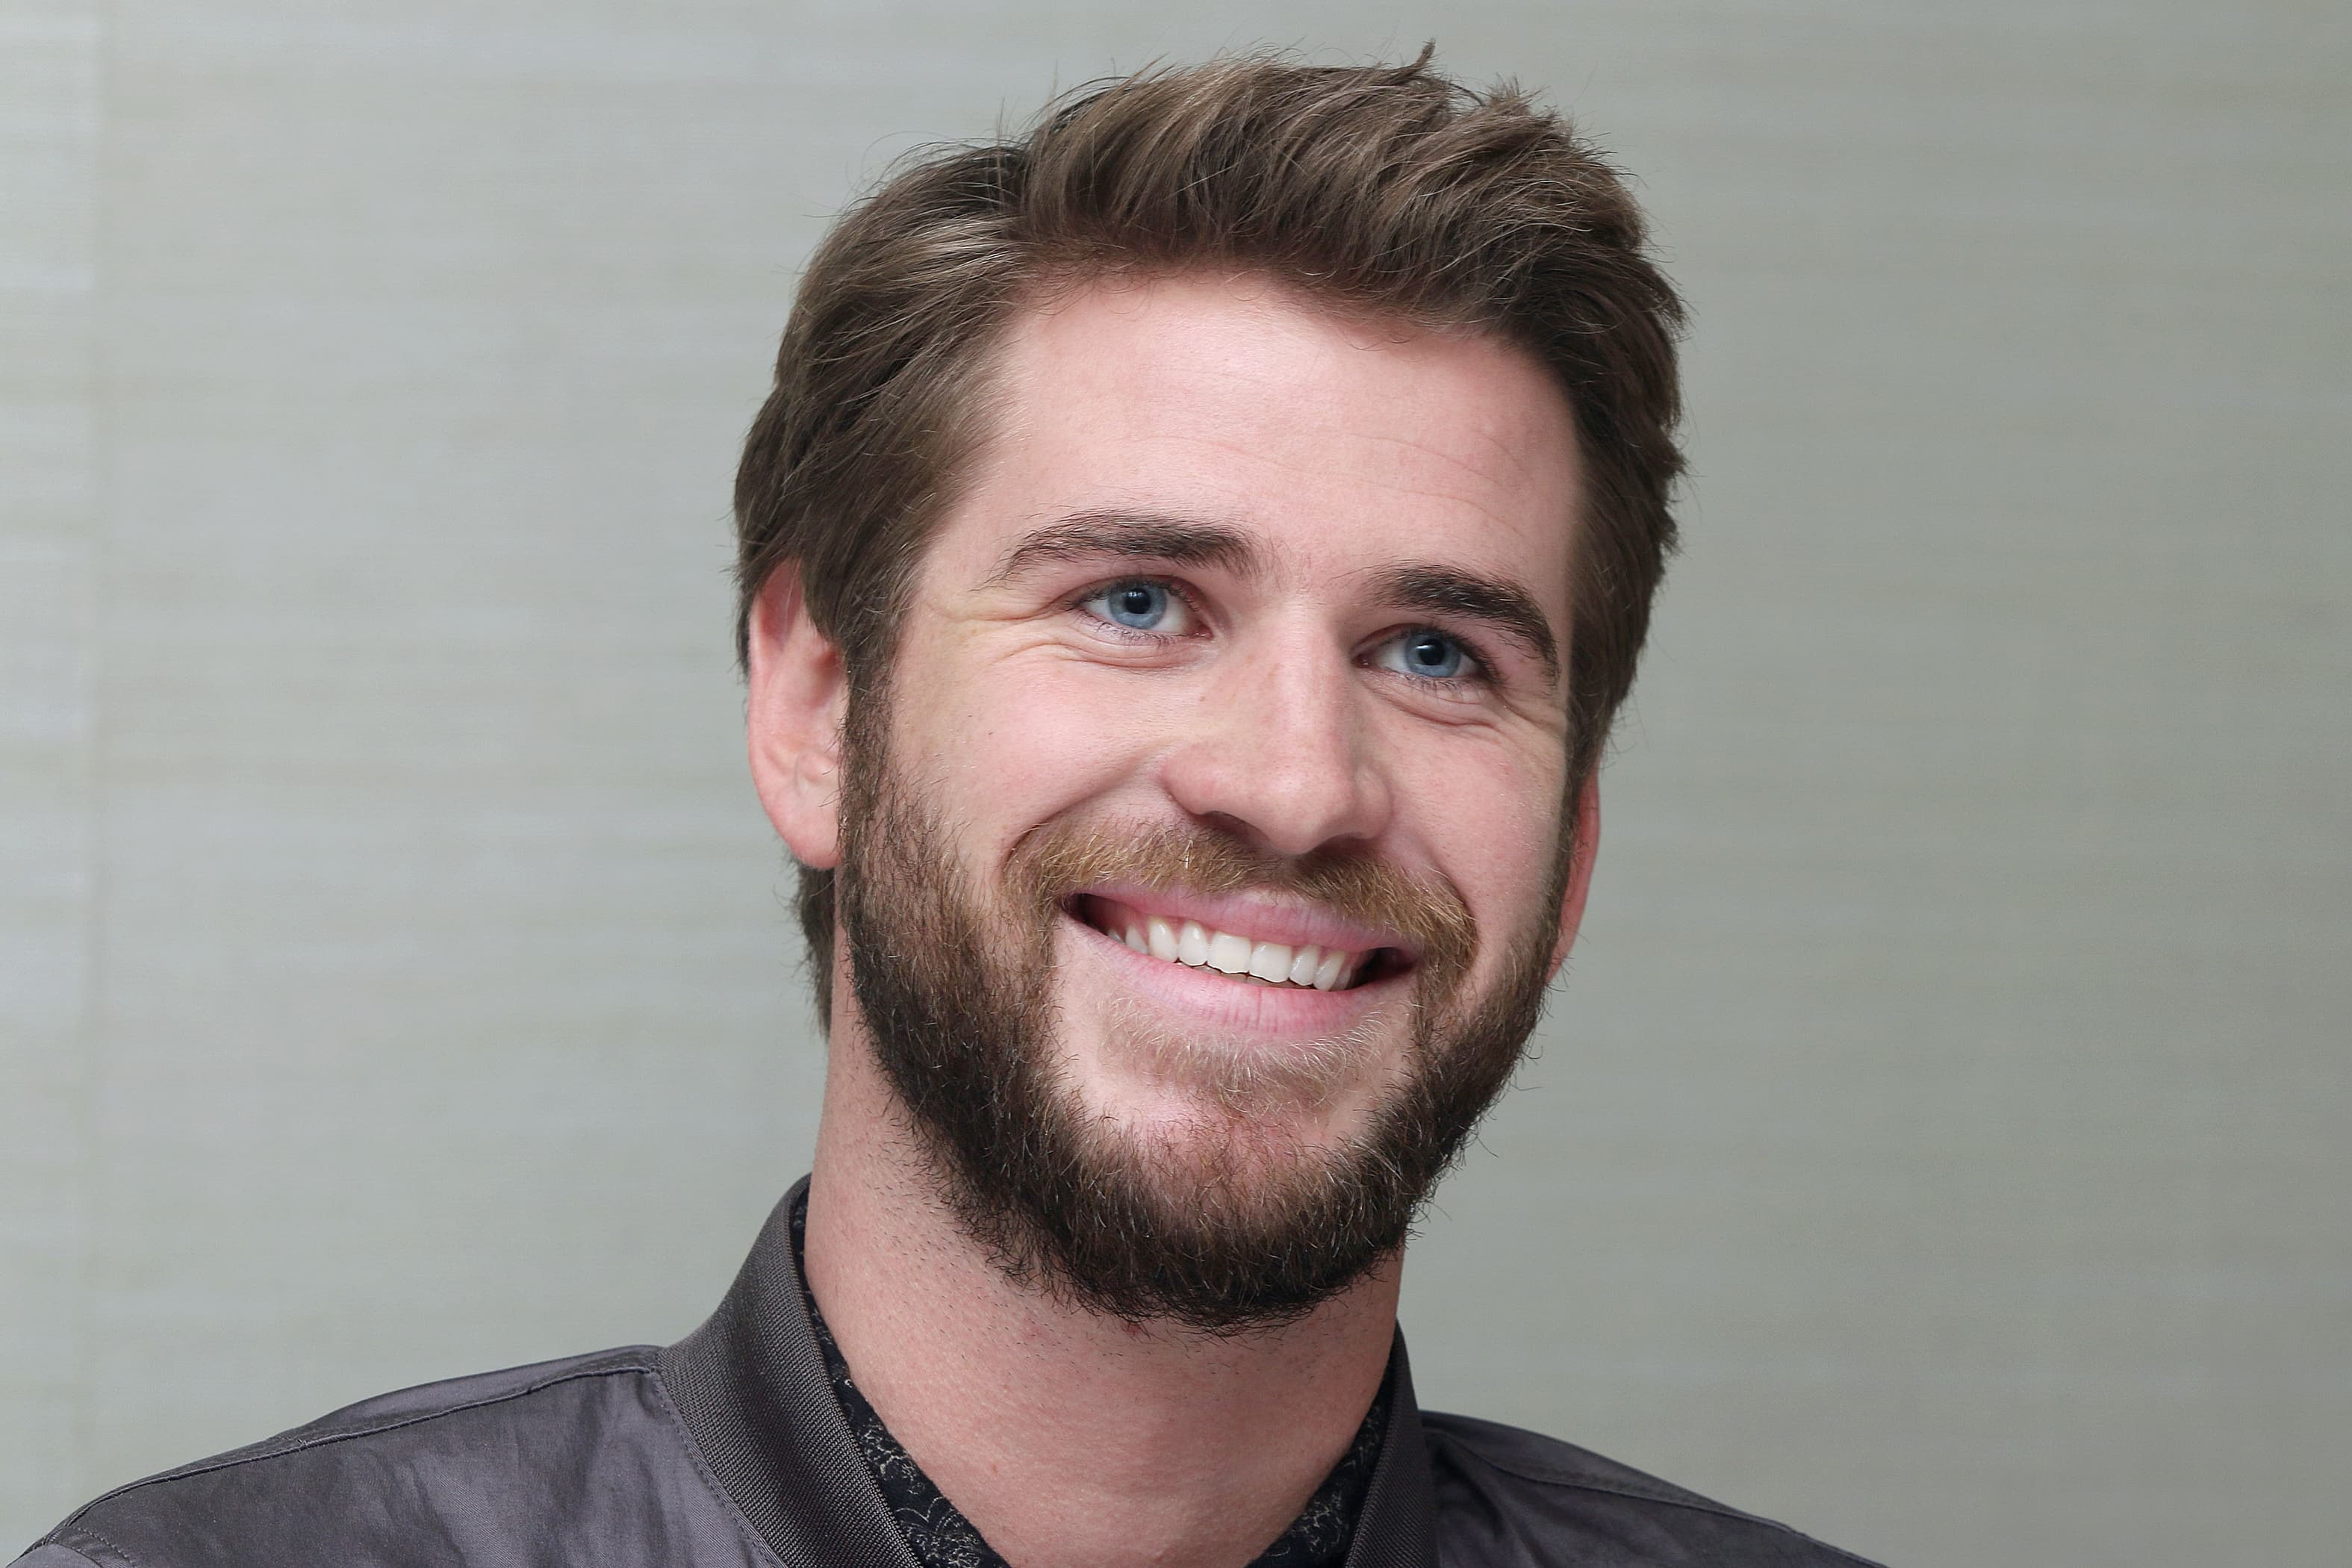 Wallpaper of Liam Hemsworth smile